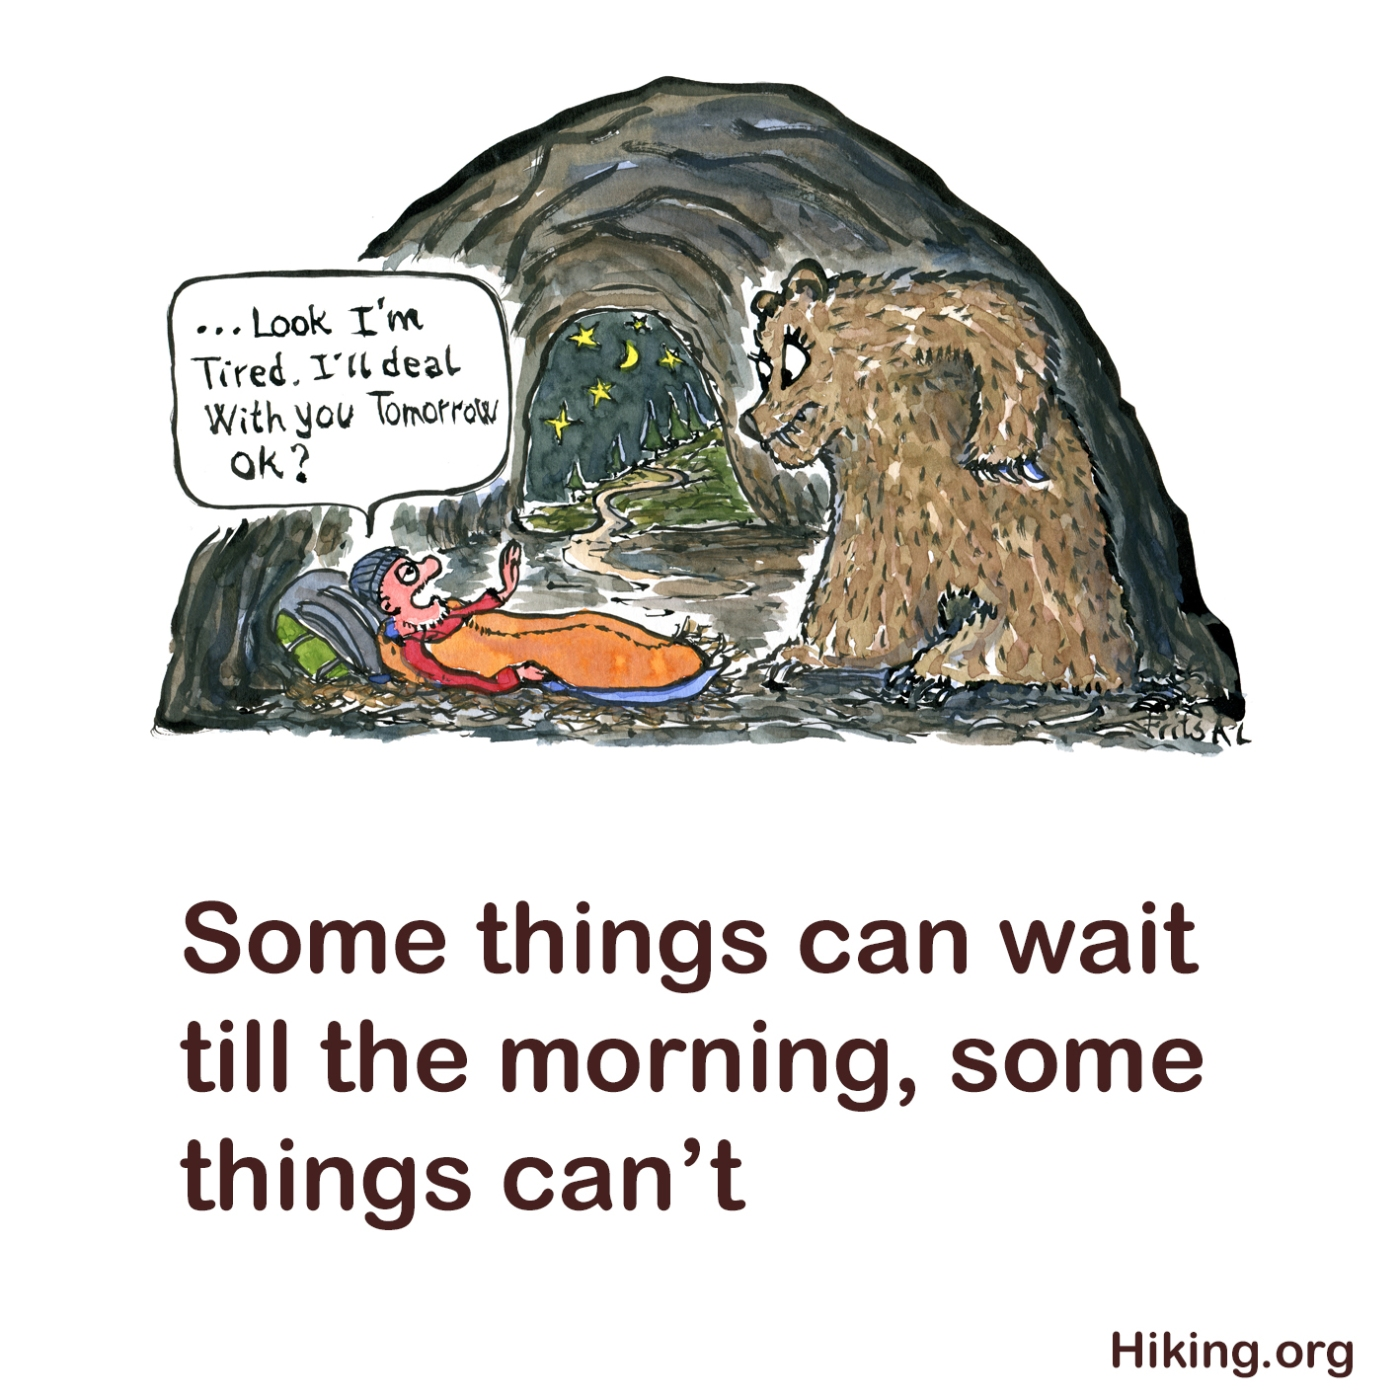 conflict-avoidance-postphone-talk-about-it-tomorrow-hiker-bear-hiking-square-txt-illustration-by-frits-ahlefeldt